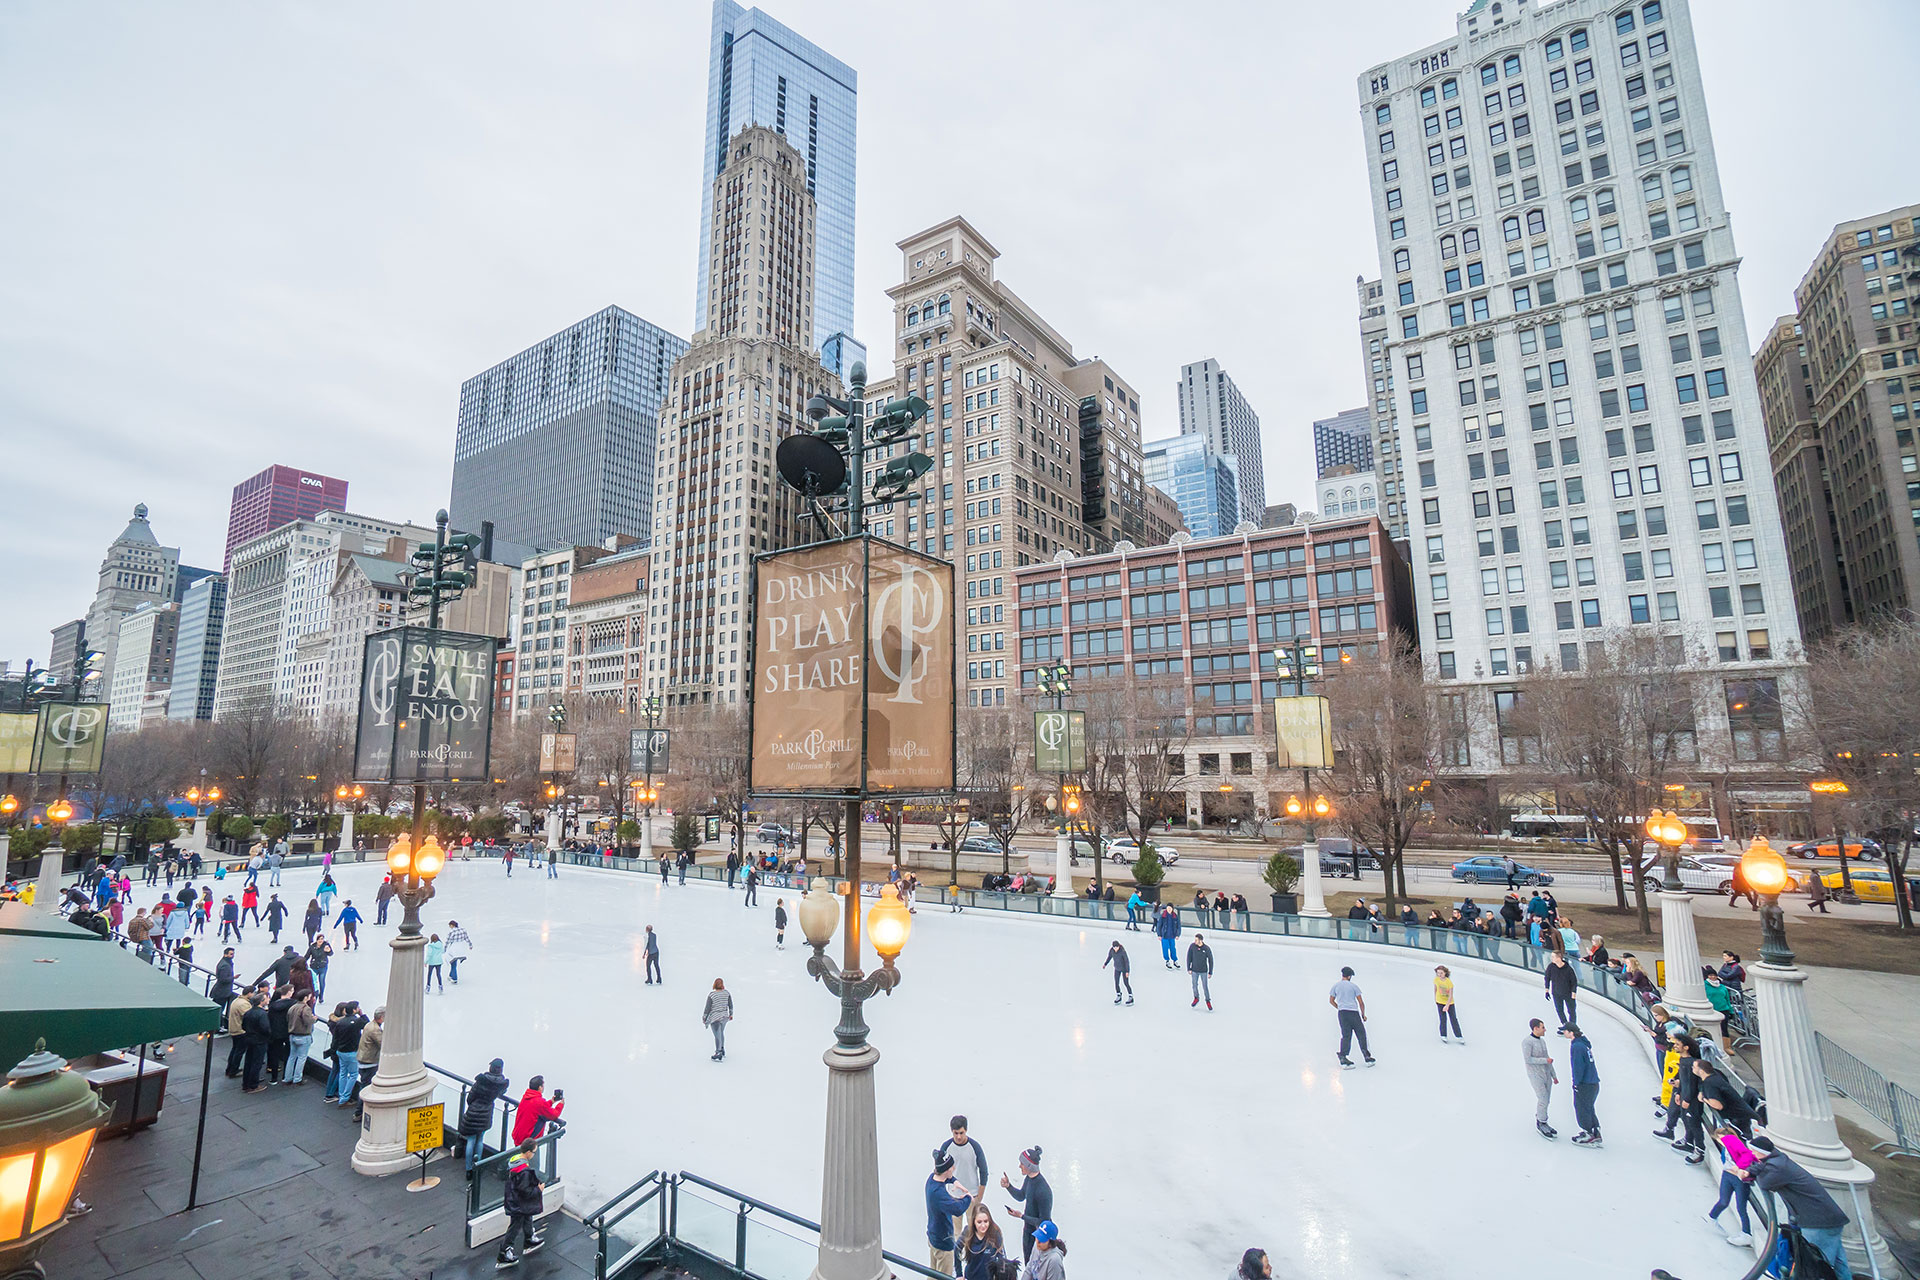 Ice skating at McCormick Tribune Plaza in Chicago, Illinois; Courtesy of Miune/Shutterstock.com